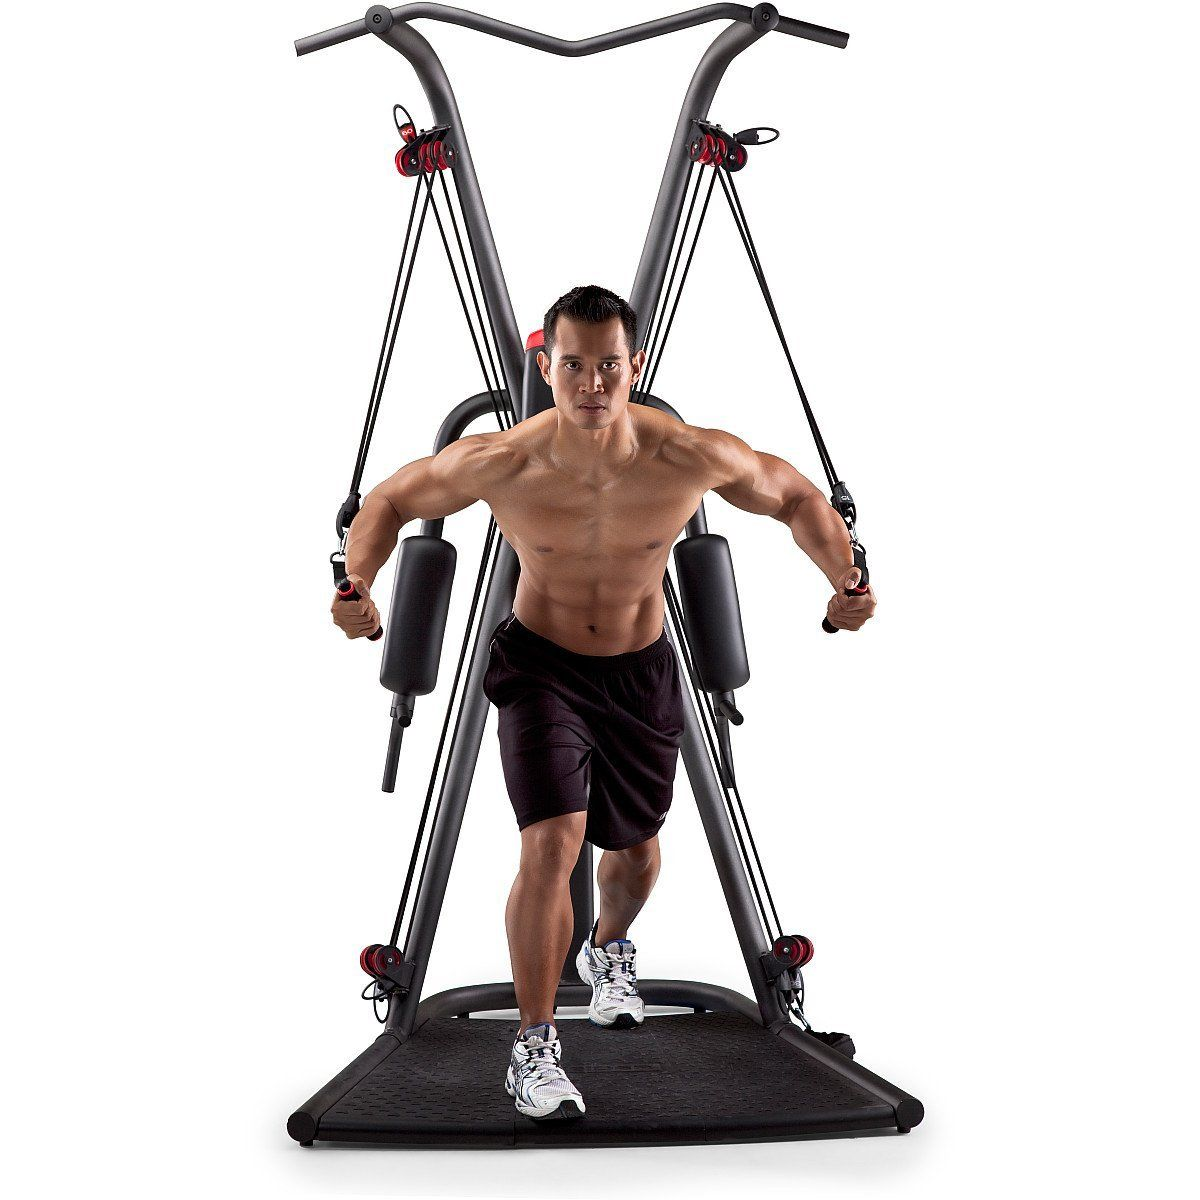 Bowflex Revolution Space Requirements: Crossbow Workout Machine Dimensions